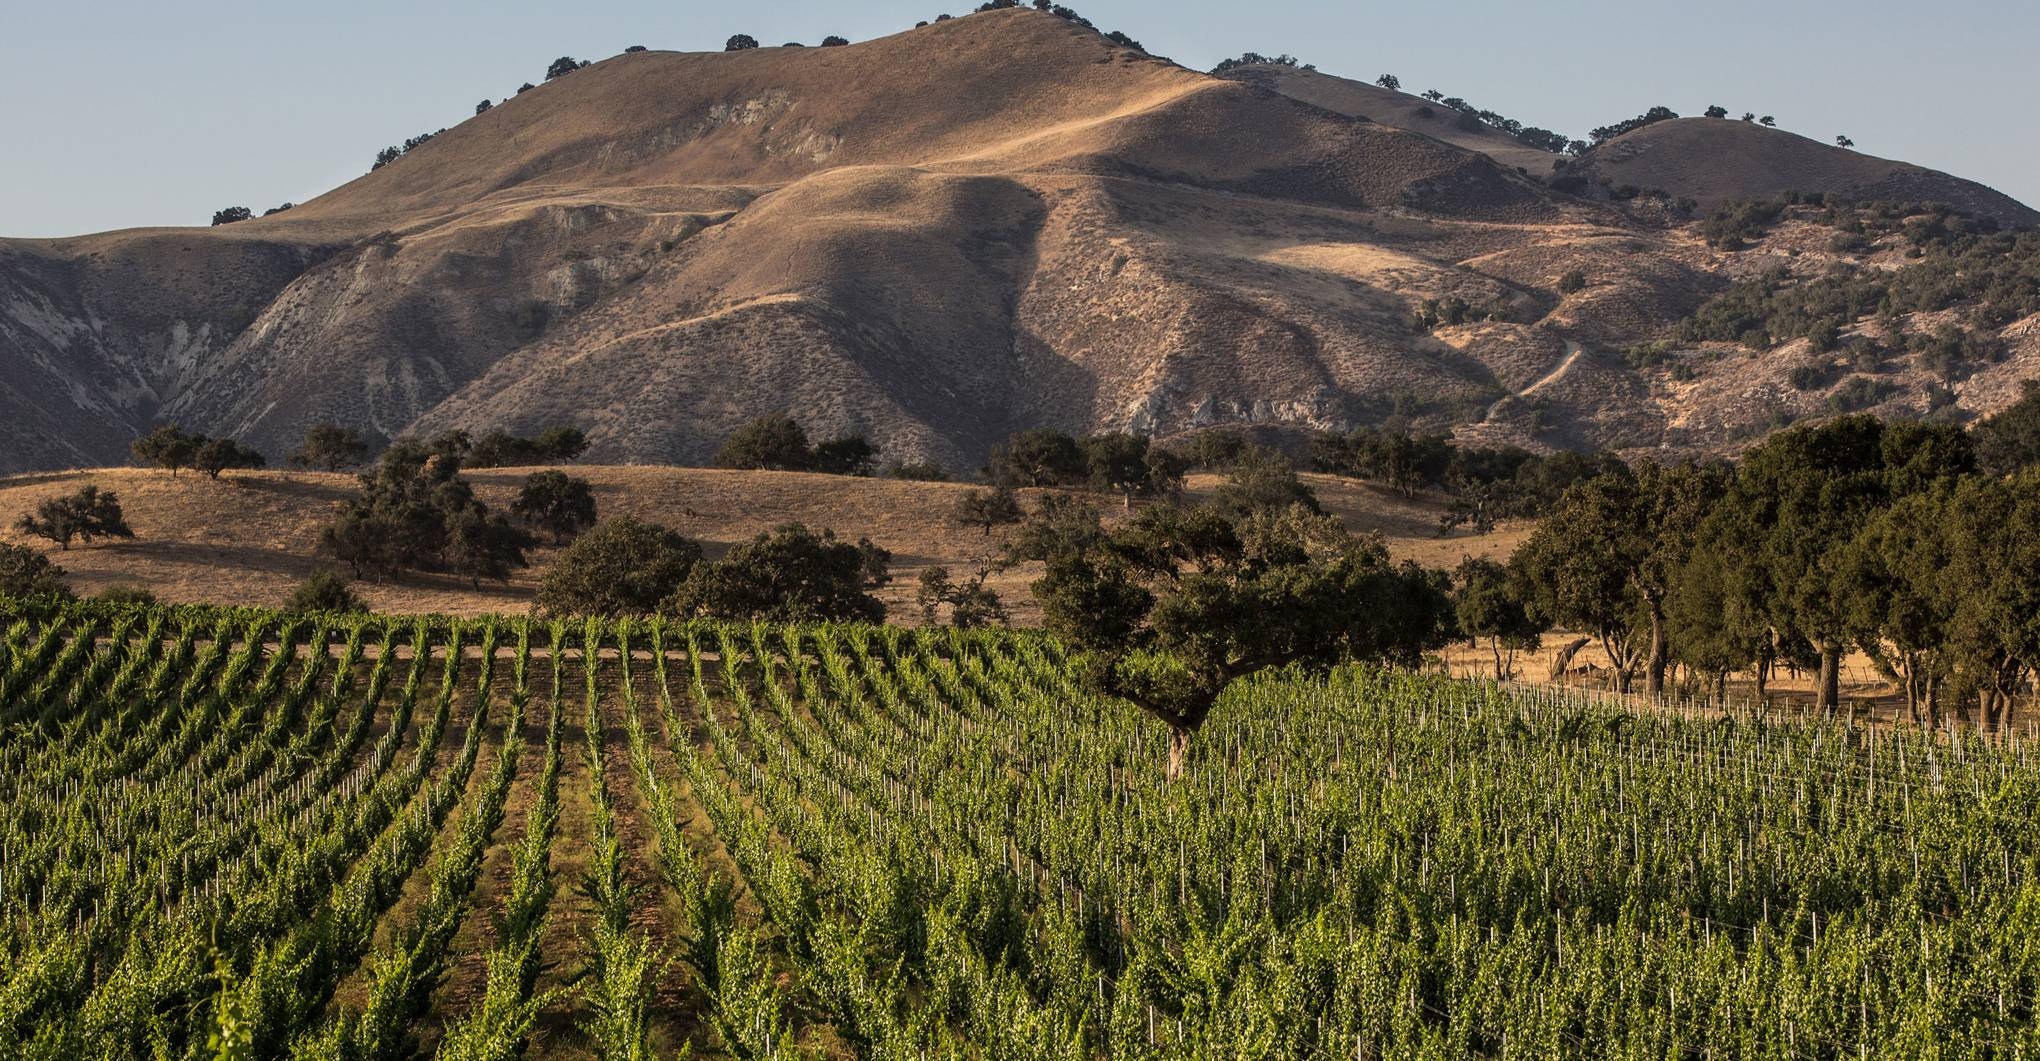 How to visit the vineyards in 'Wine Country' and 'Sideways'